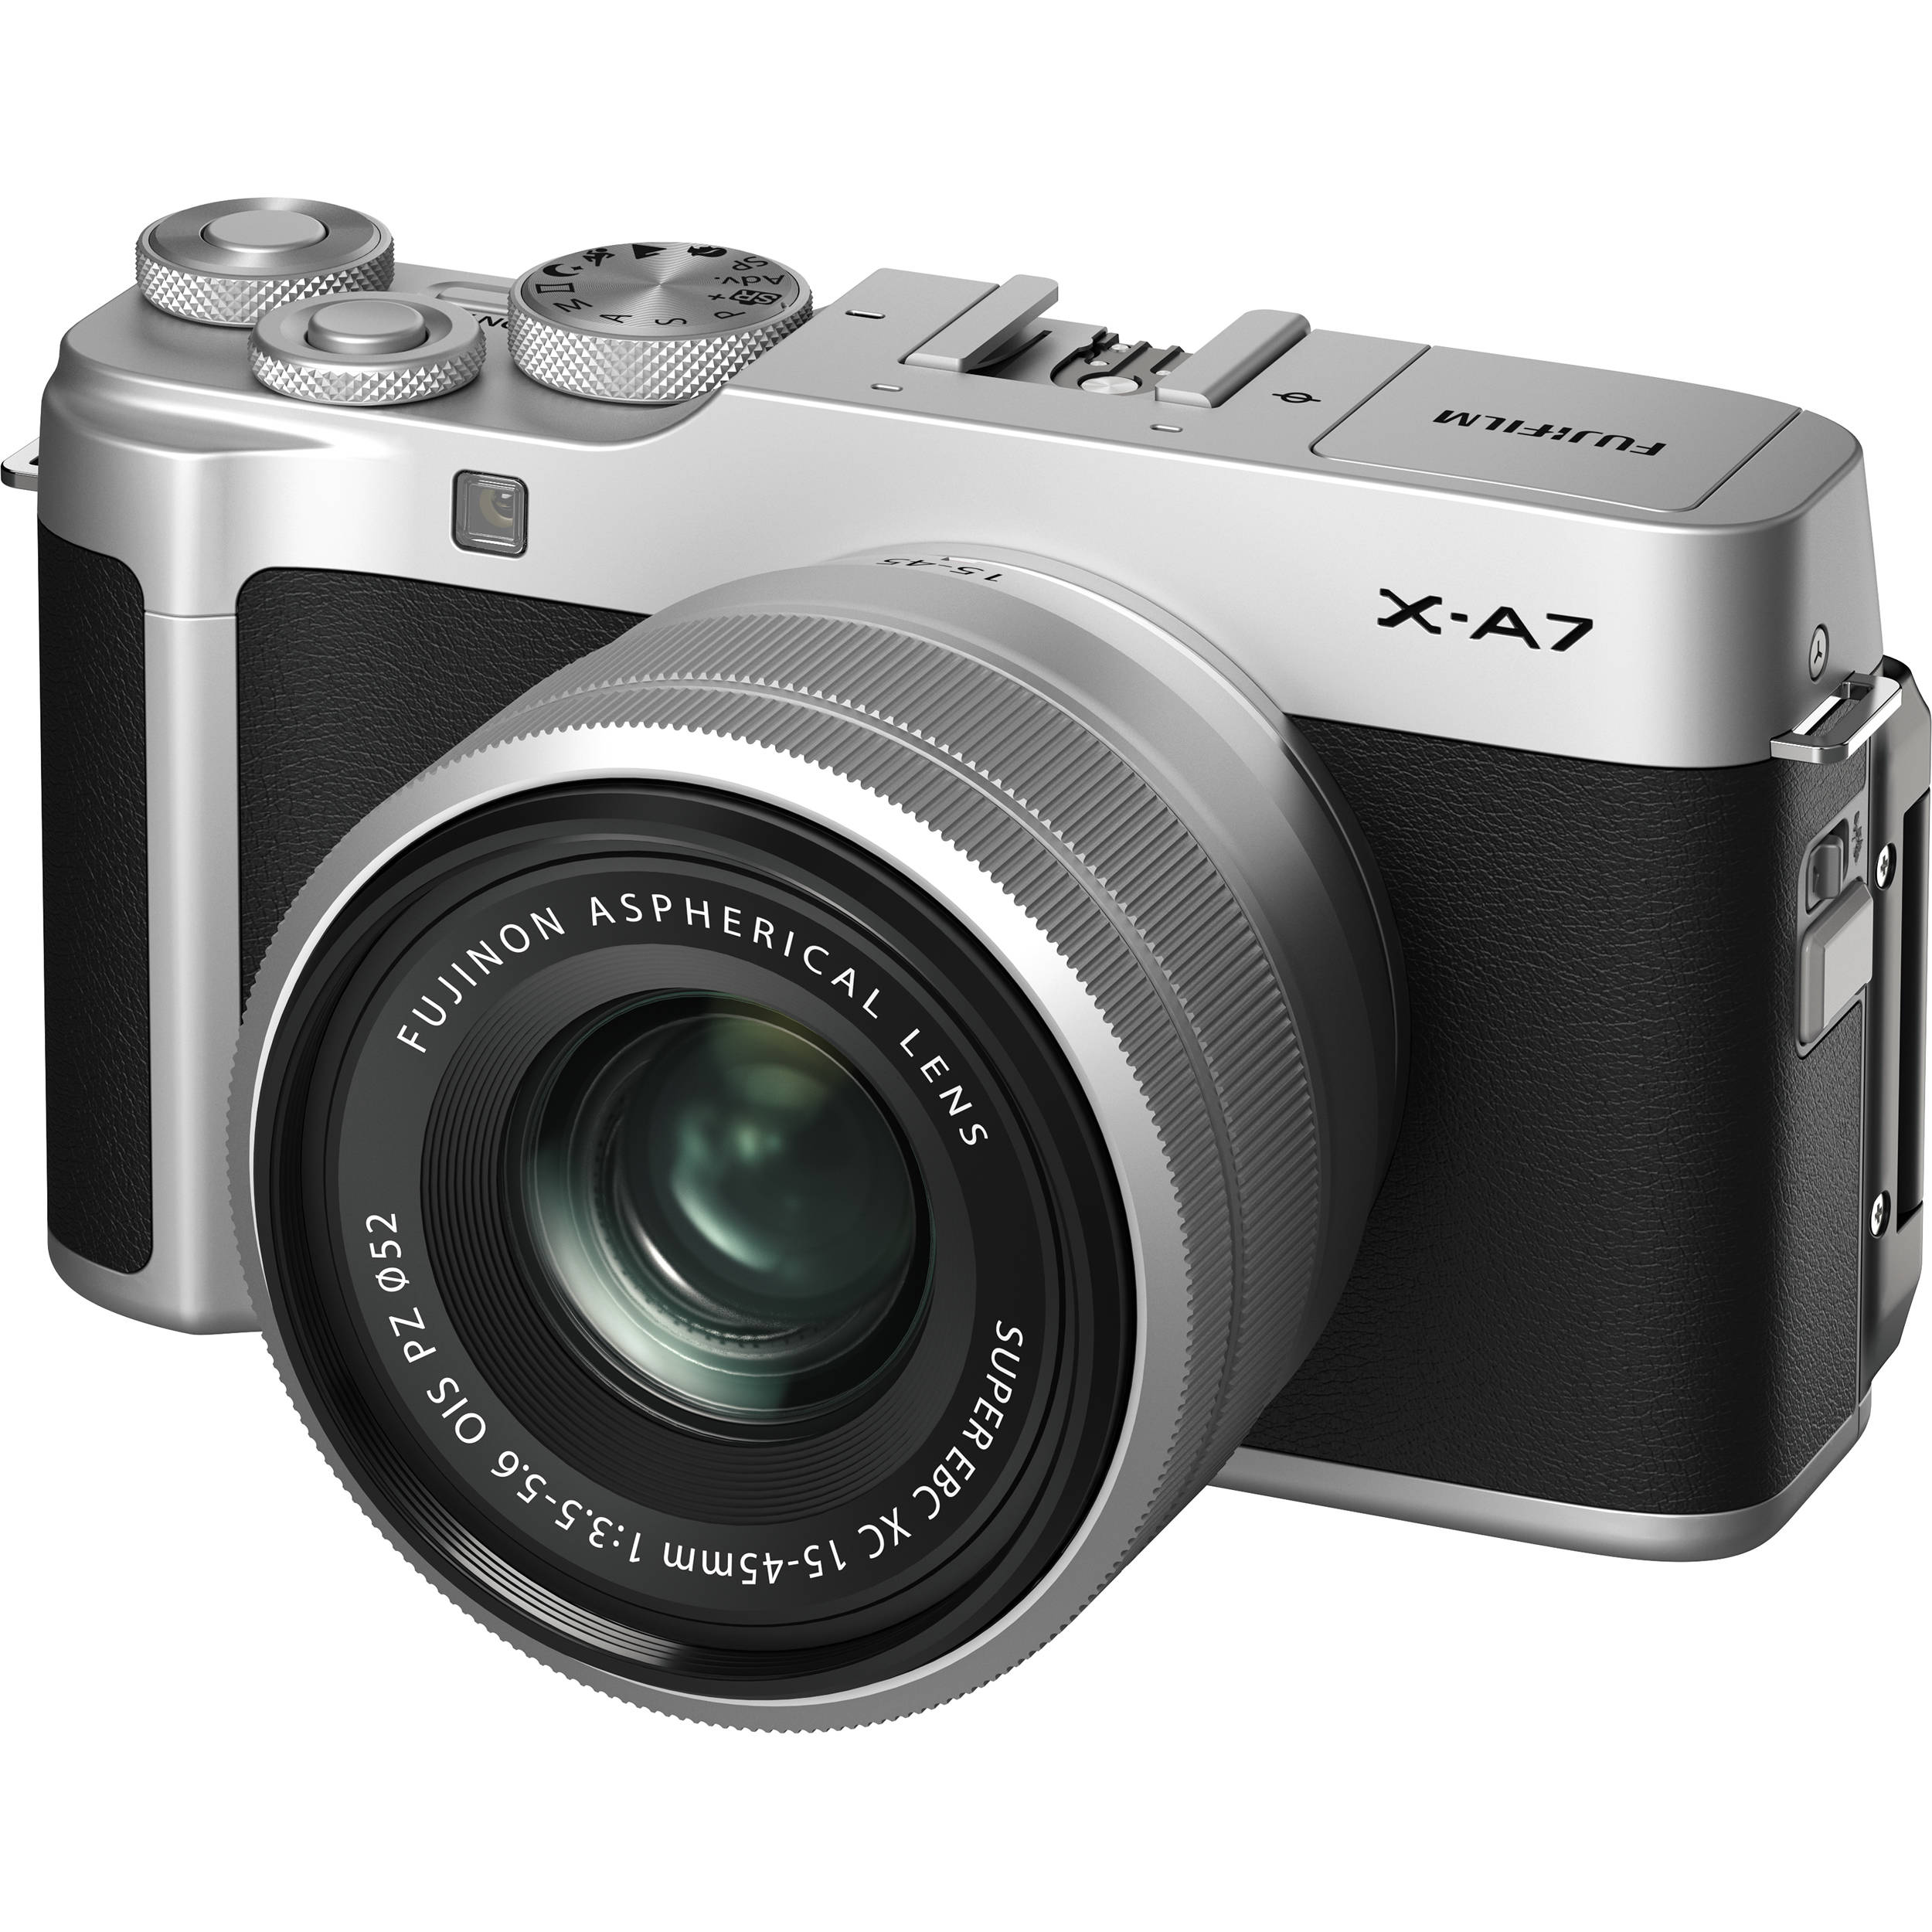 Image result for Fujifilm X-A7